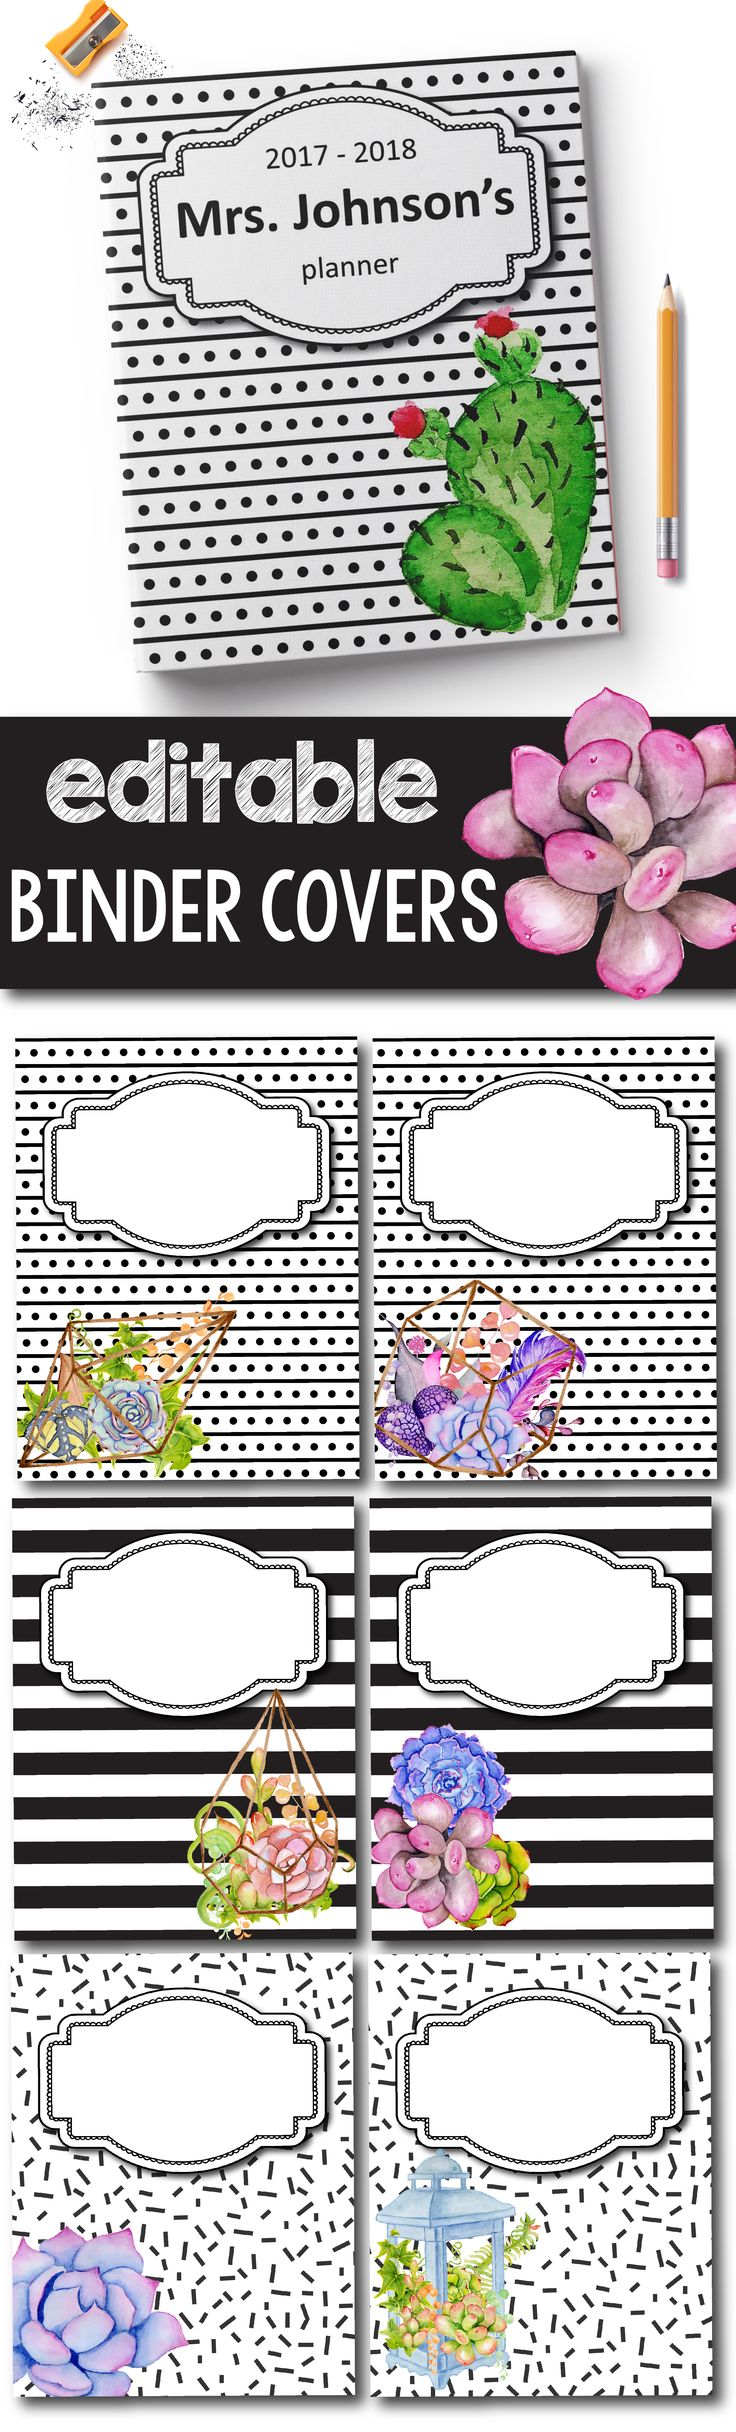 Succulent Binder Covers and Spines EDITABLE - Succulent Decor the perfect printable for your teacher binder, it doesn't matter if you're a preschool, kindergarten, elementary or even high school teacher, these editable binder covers will get make organizing your lesson plans much easier.  #classroomdecor #teacherbinder #succulentclassroom #cactusdecor